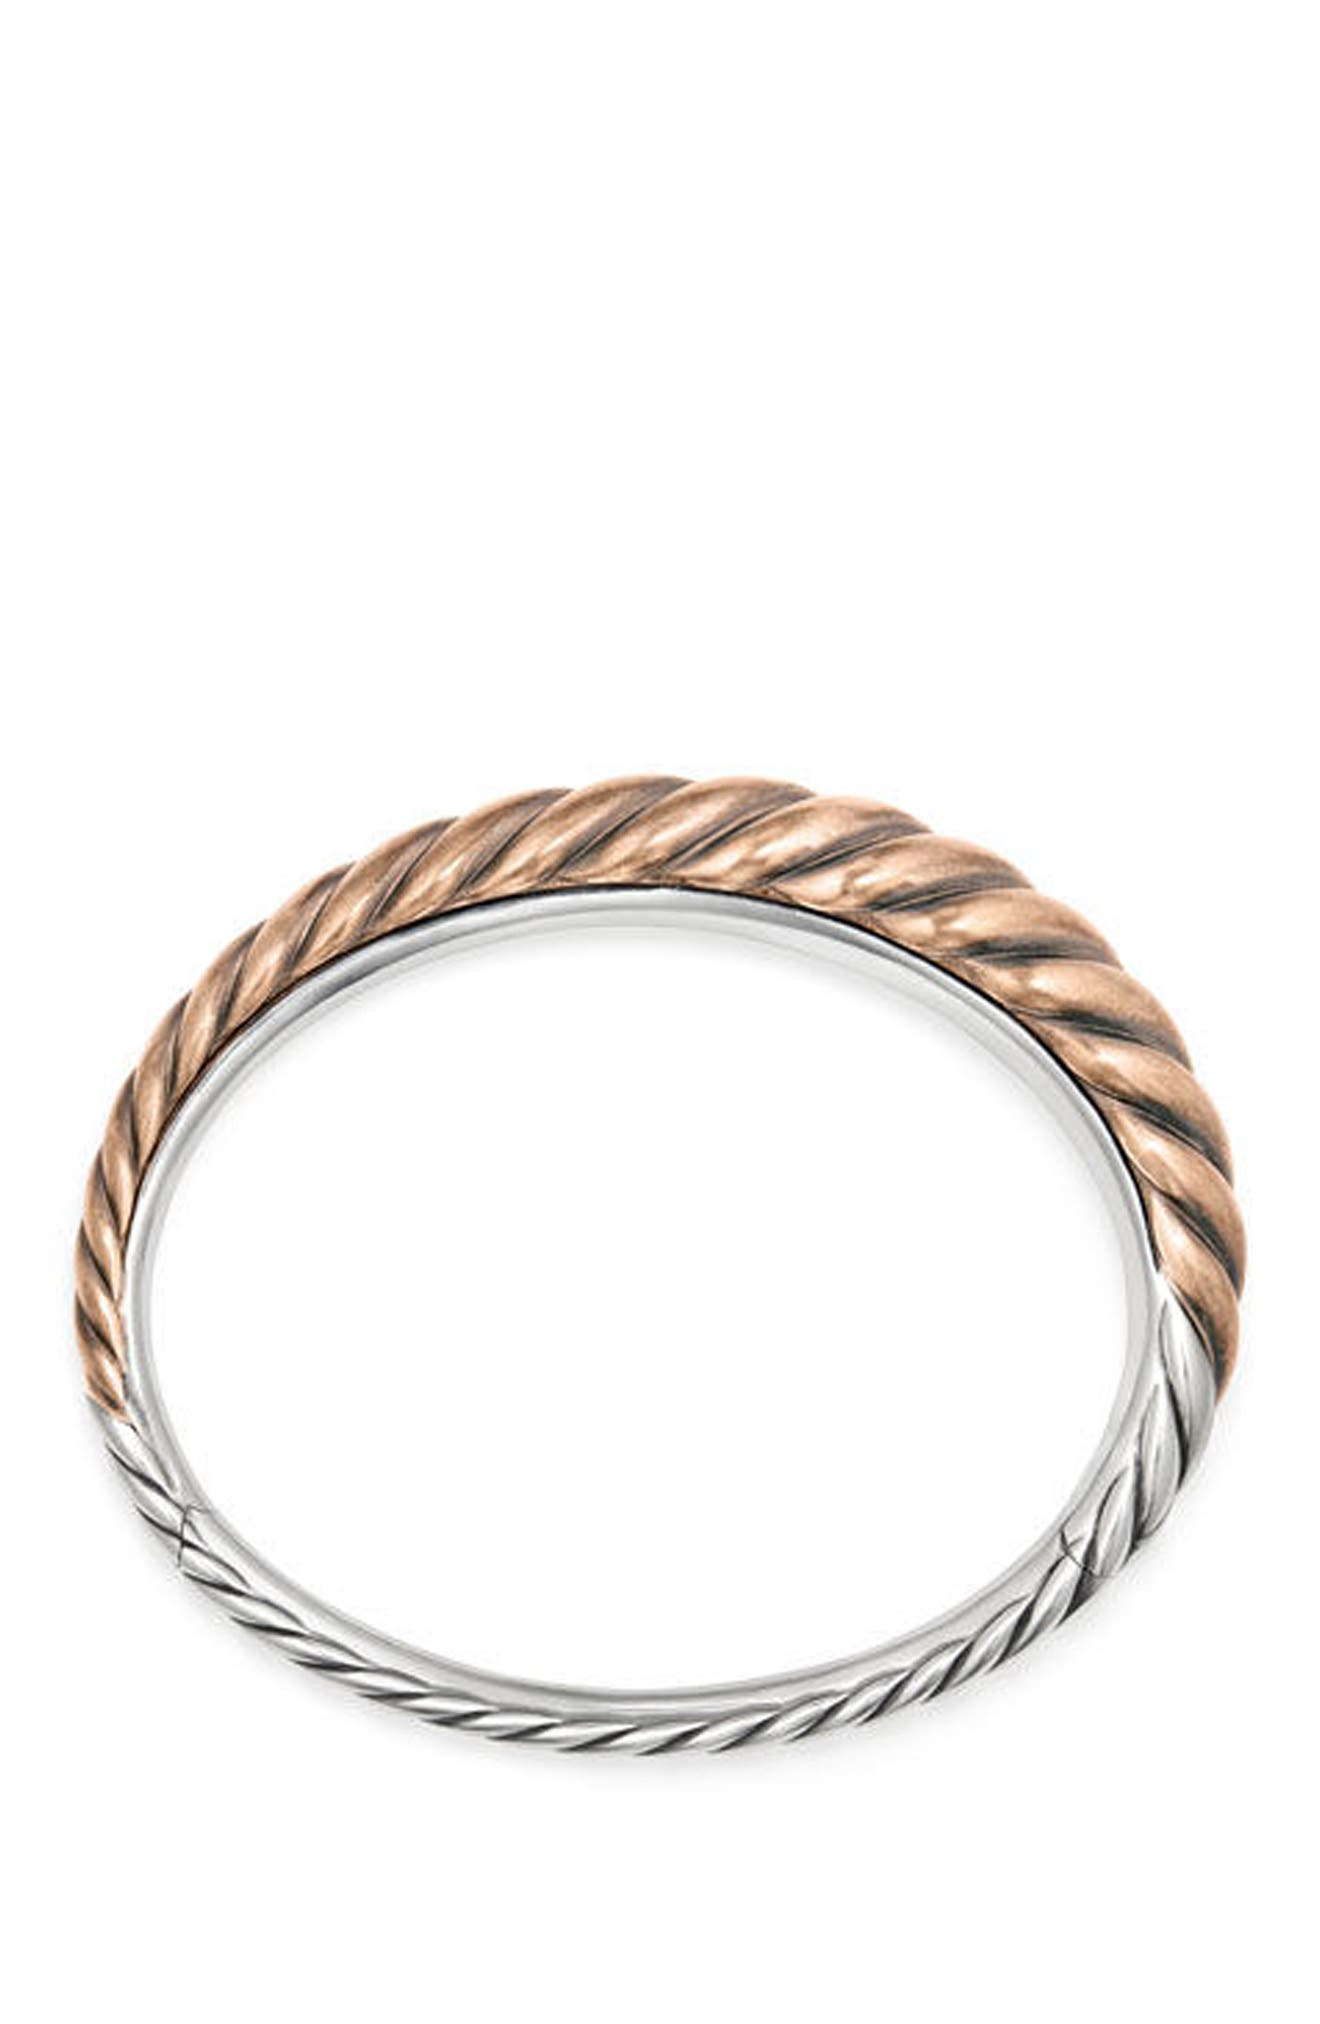 Pure Form Mixed Metal Cable Bracelet with Bronze and Silver, 9.5mm,                             Alternate thumbnail 2, color,                             Silver